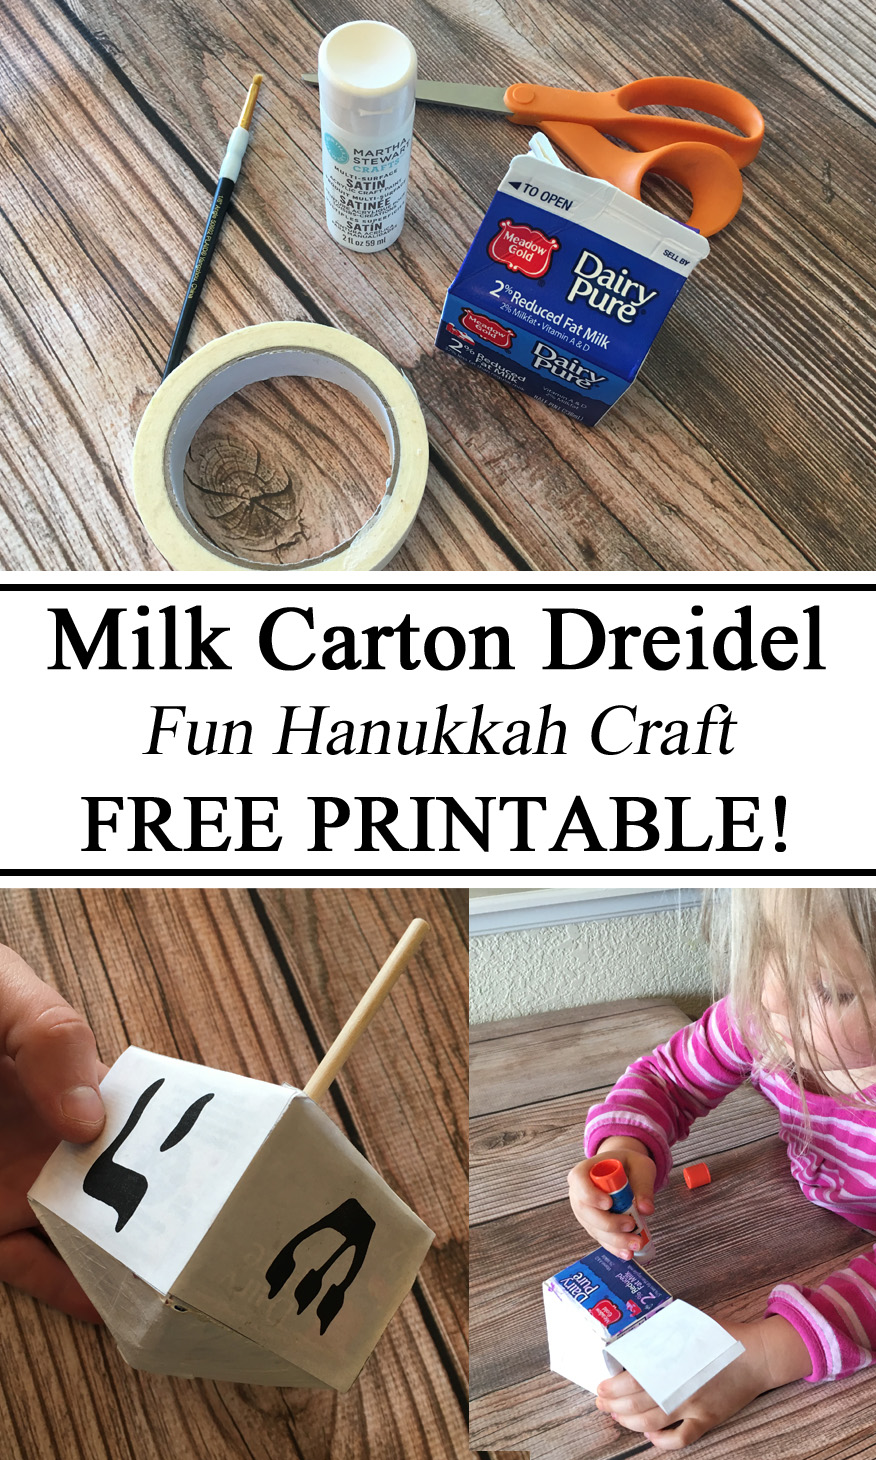 Upcycle, Milk Carton Craft, Preschool Crafts, Activities, Jewish, Hanukkah, Israeli, Israel Unit, Dreidel, Paper Crafts, Preschool, Kindergarten, Elementary, Homeschool, Homeschooling, Montessori, Waldorf, Geography, #travelingthroughlearning, Educational, Hands on Activity, Arts and Crafts, Creativity